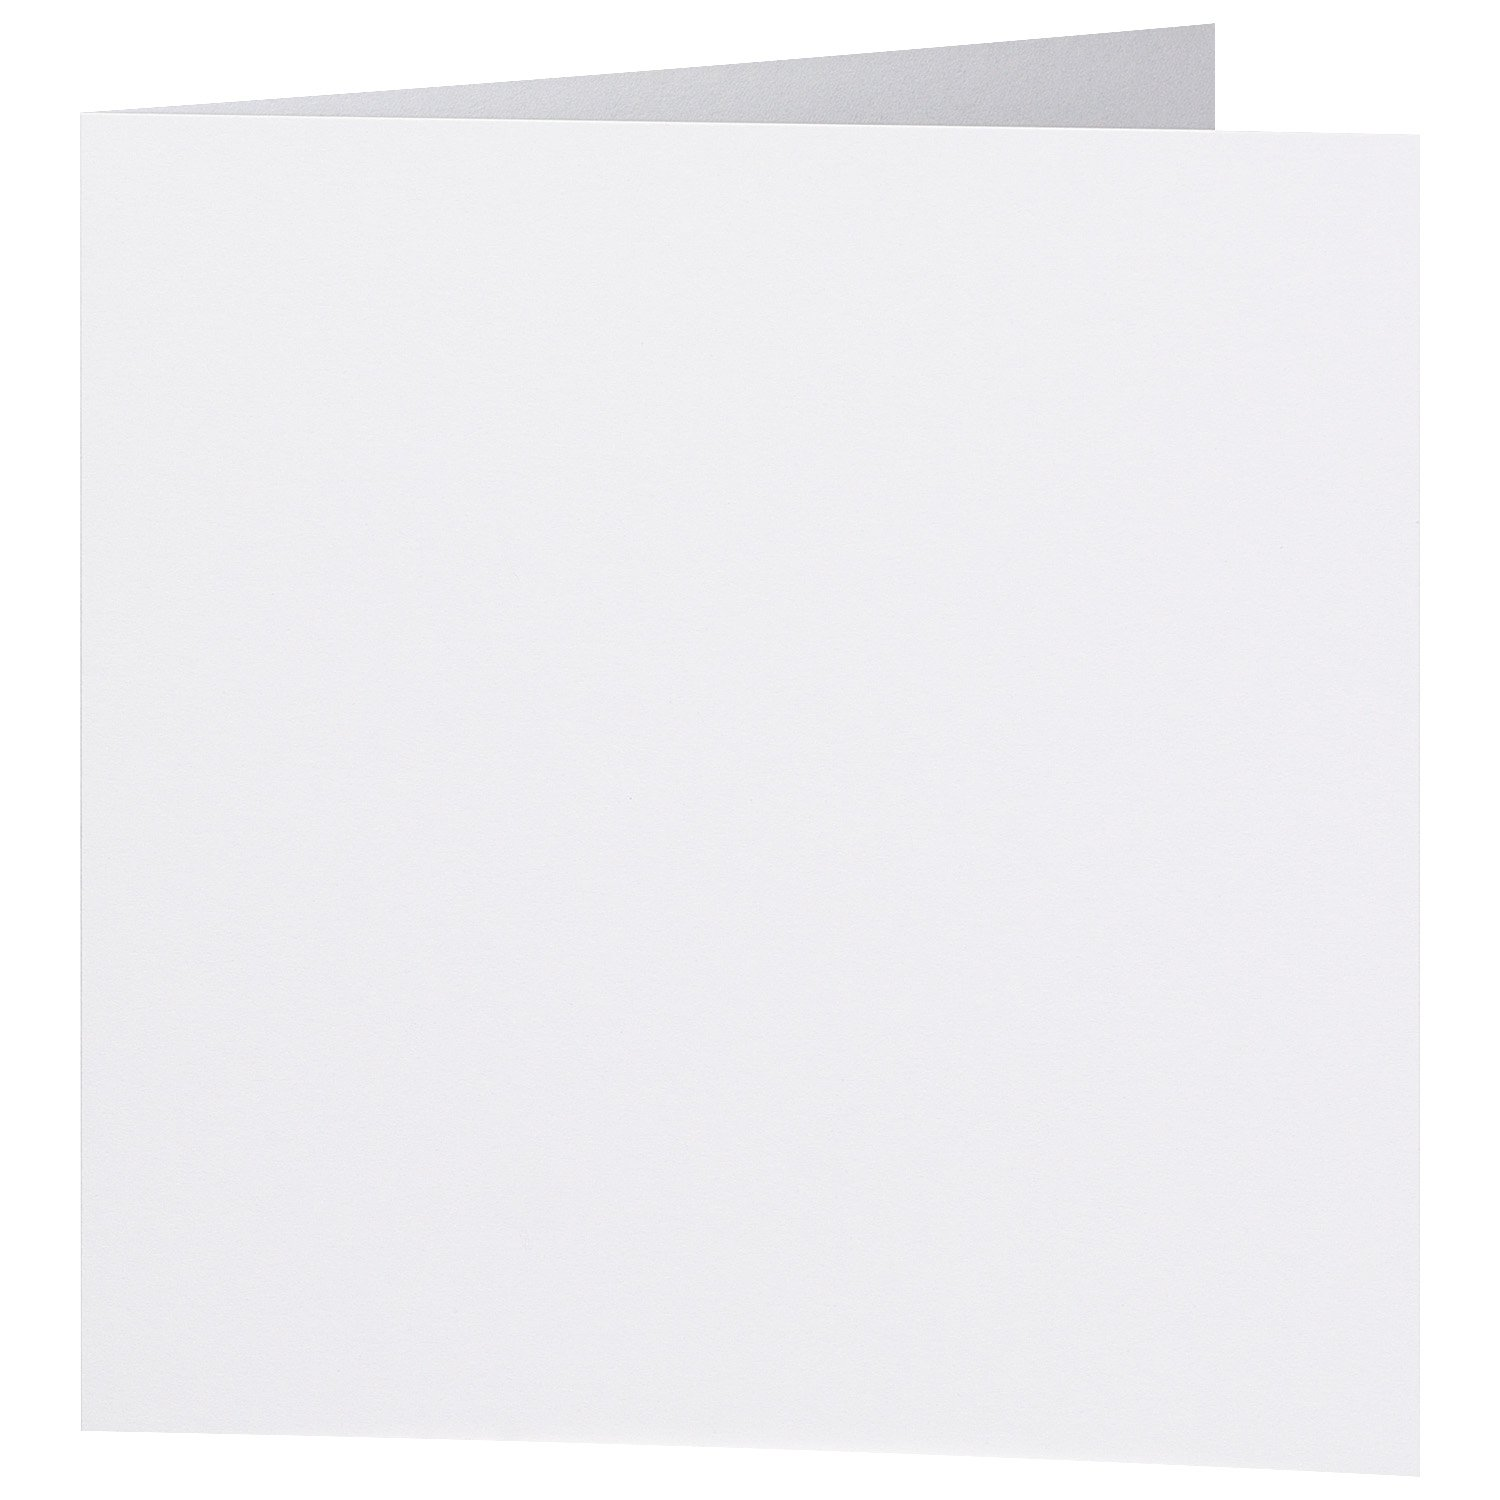 Craft Creations Square Smooth White Economy 144mm X 144mm 6 X 6